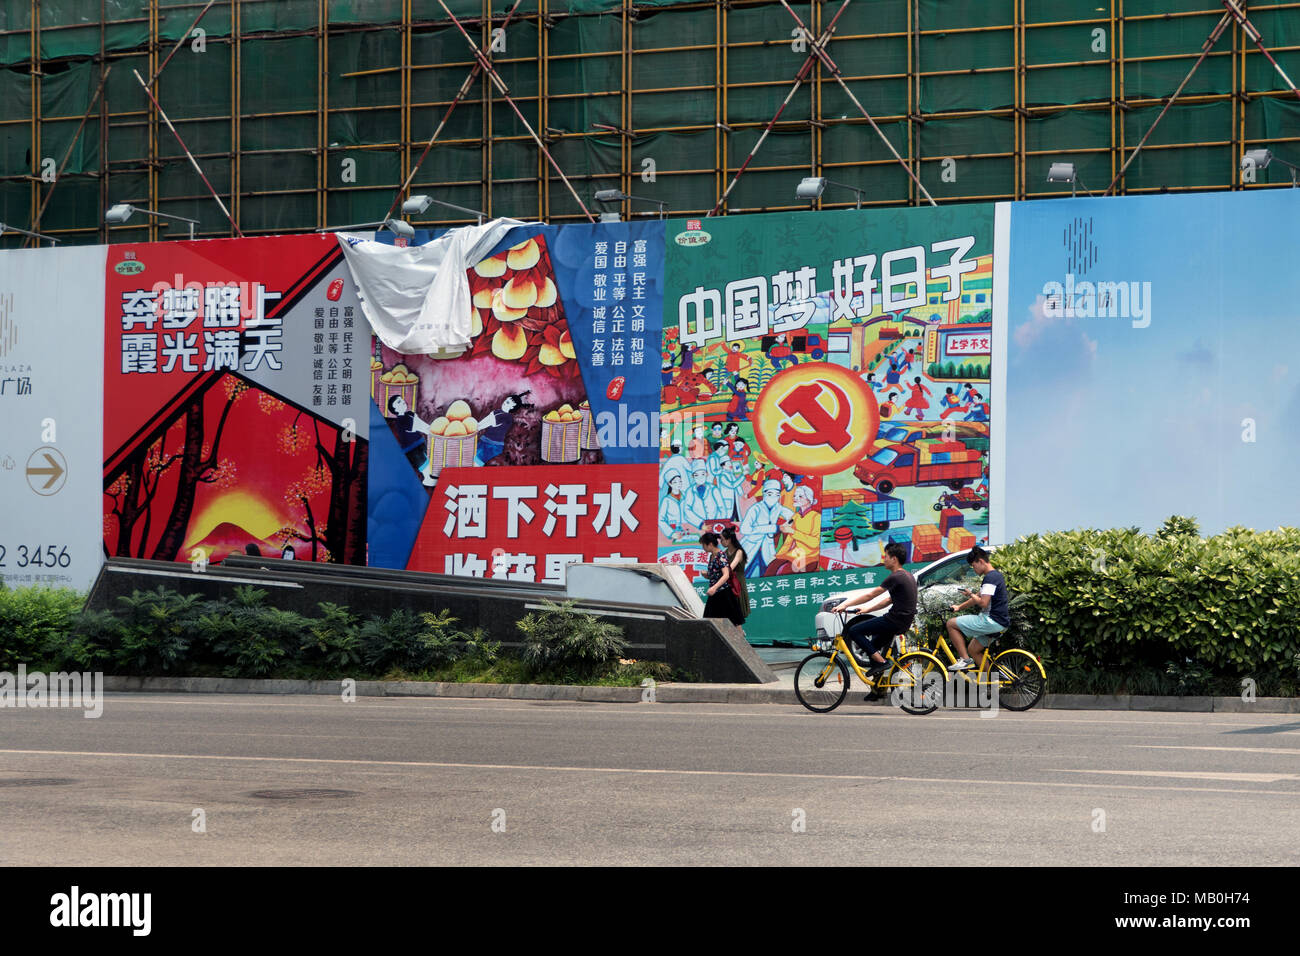 The streets of Chengdu, Sichuan, China, Asia with communist propaganda poster - Stock Image